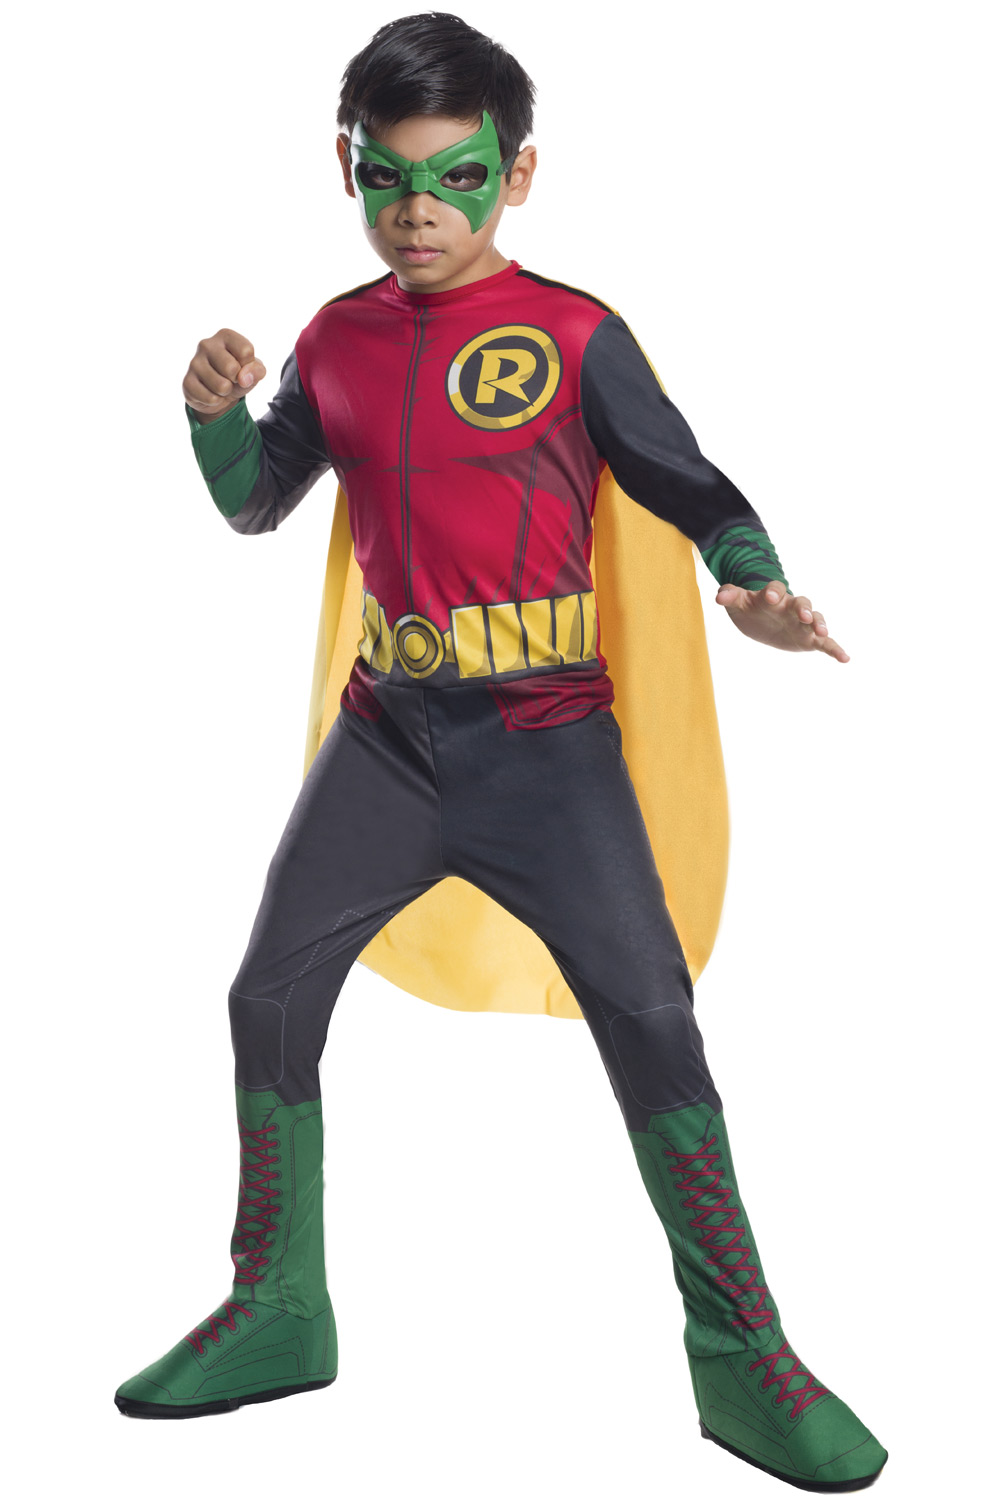 Gotham City Superhero Robin Batman Child Costume | eBay